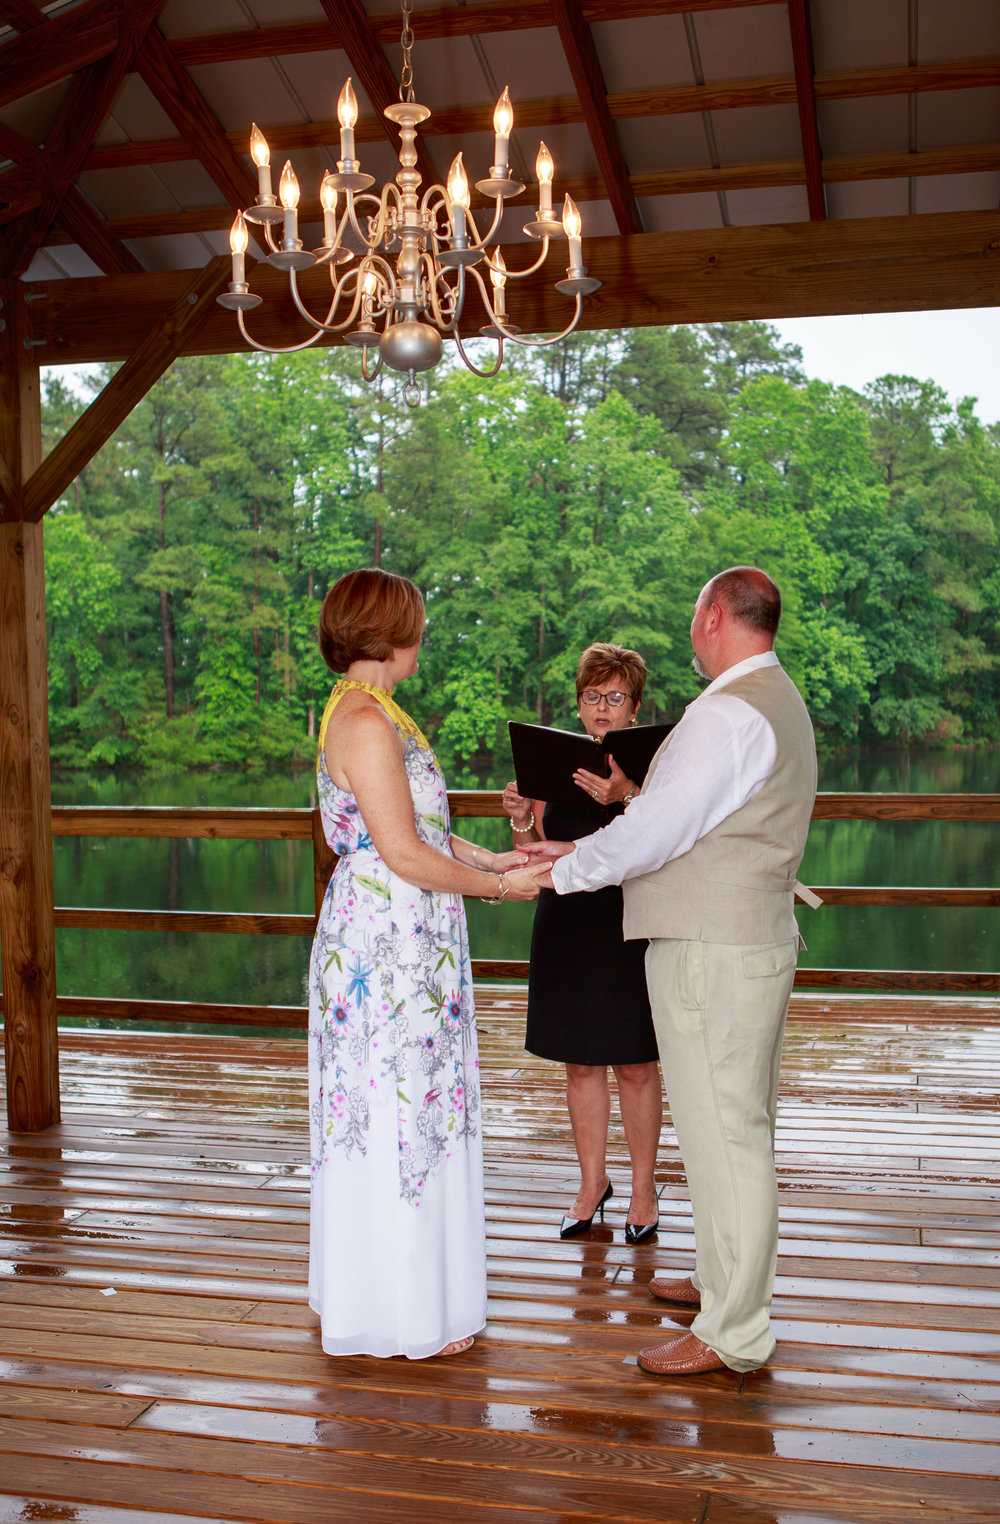 NC-Wedding-Cape-Fear-Vineyard-17.jpg